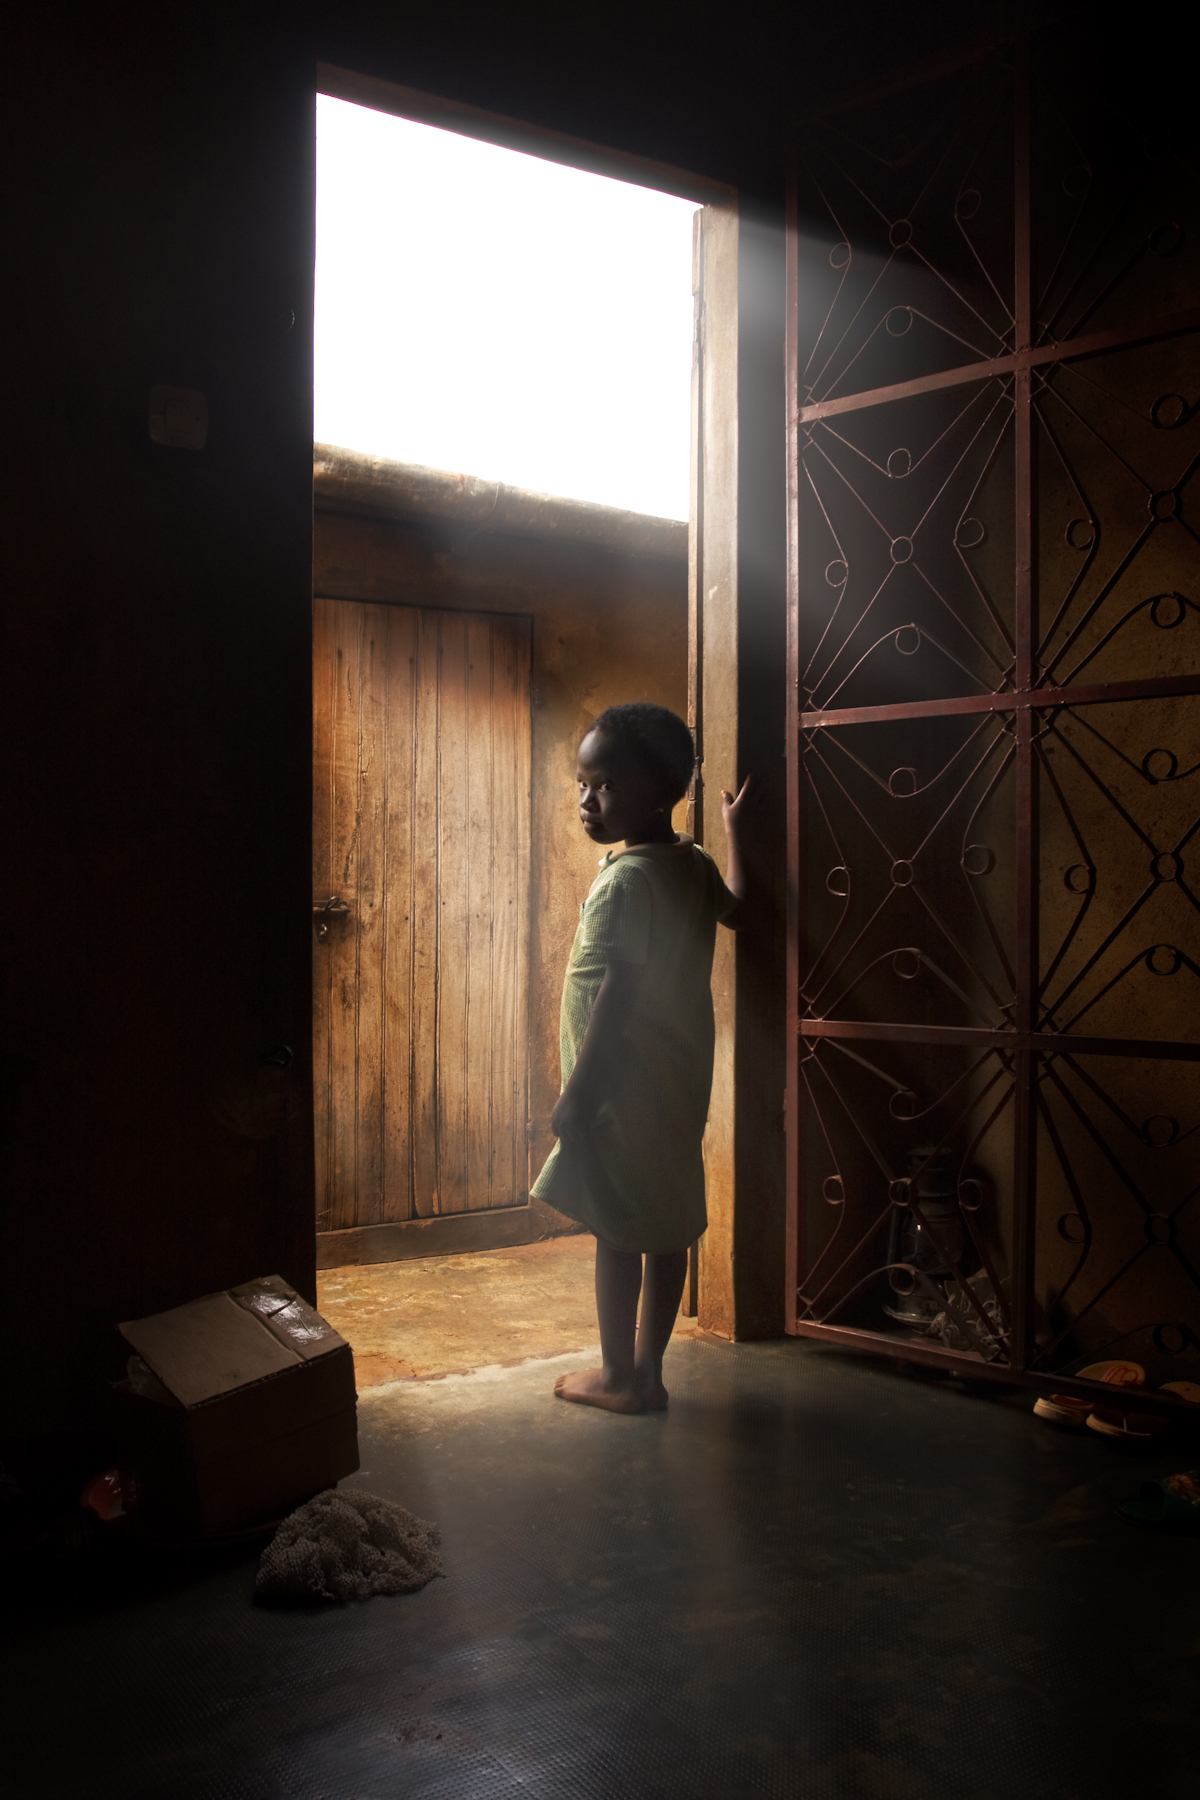 Juju in the doorway, Ketou.